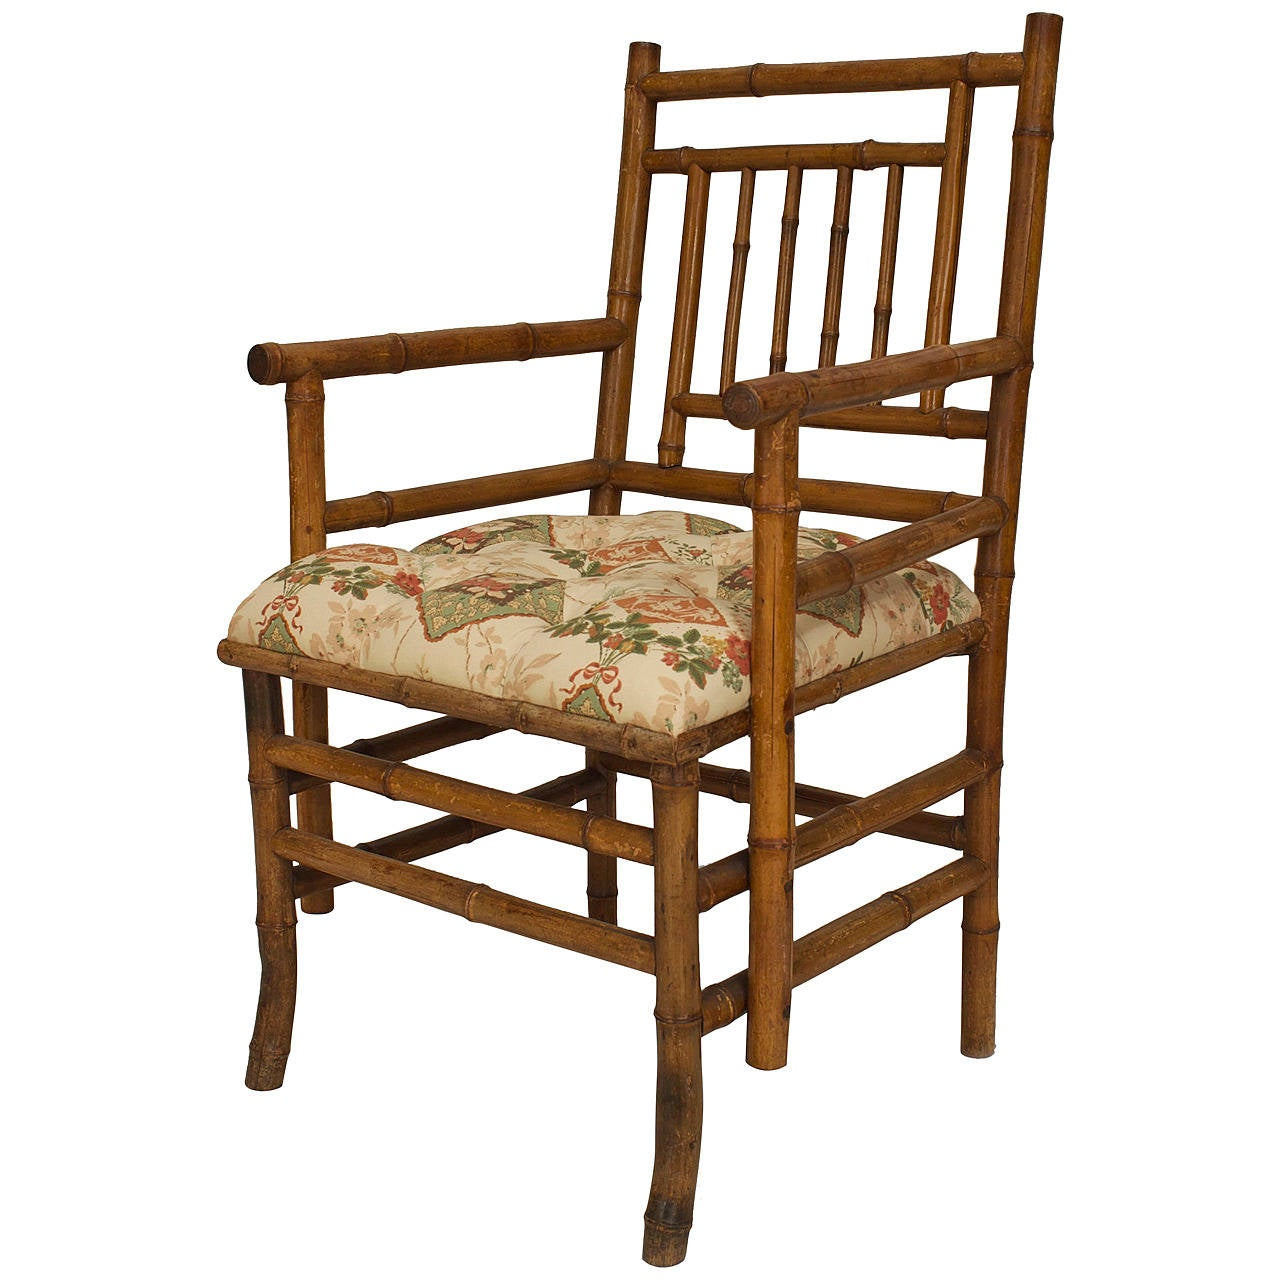 Merveilleux 19th Century French Upholstered Bamboo Armchair For Sale